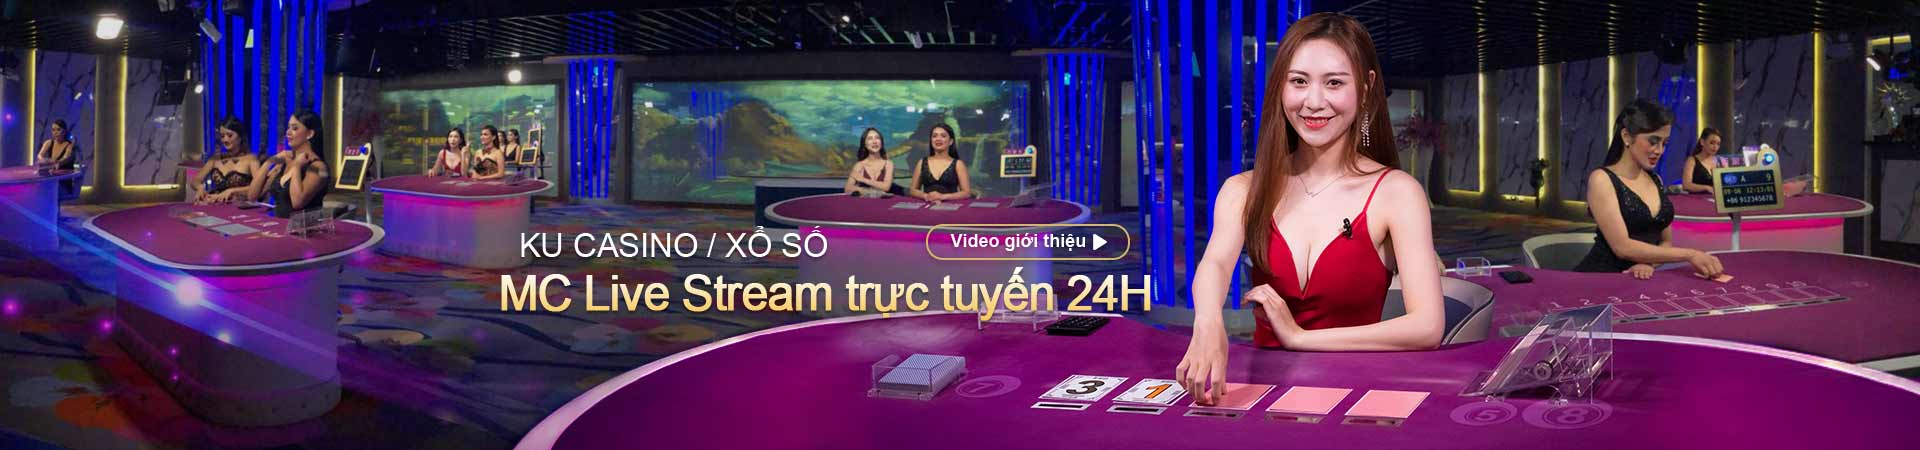 KU Casino MC Livestream 24H